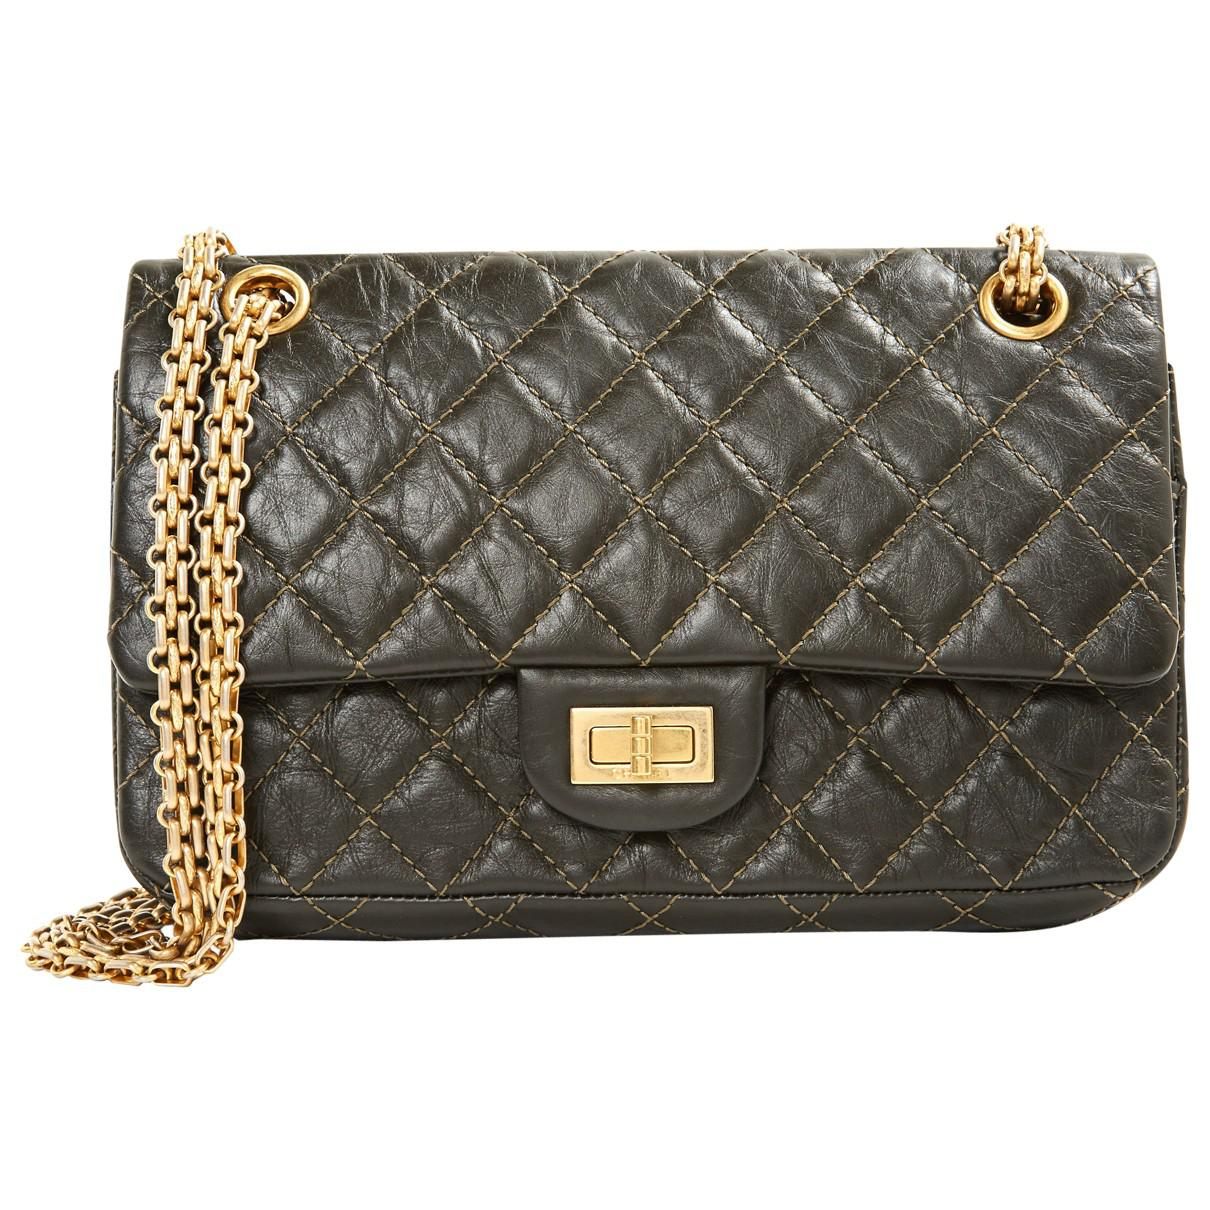 4463af954410 Lyst - Chanel Pre-owned Bag in Green